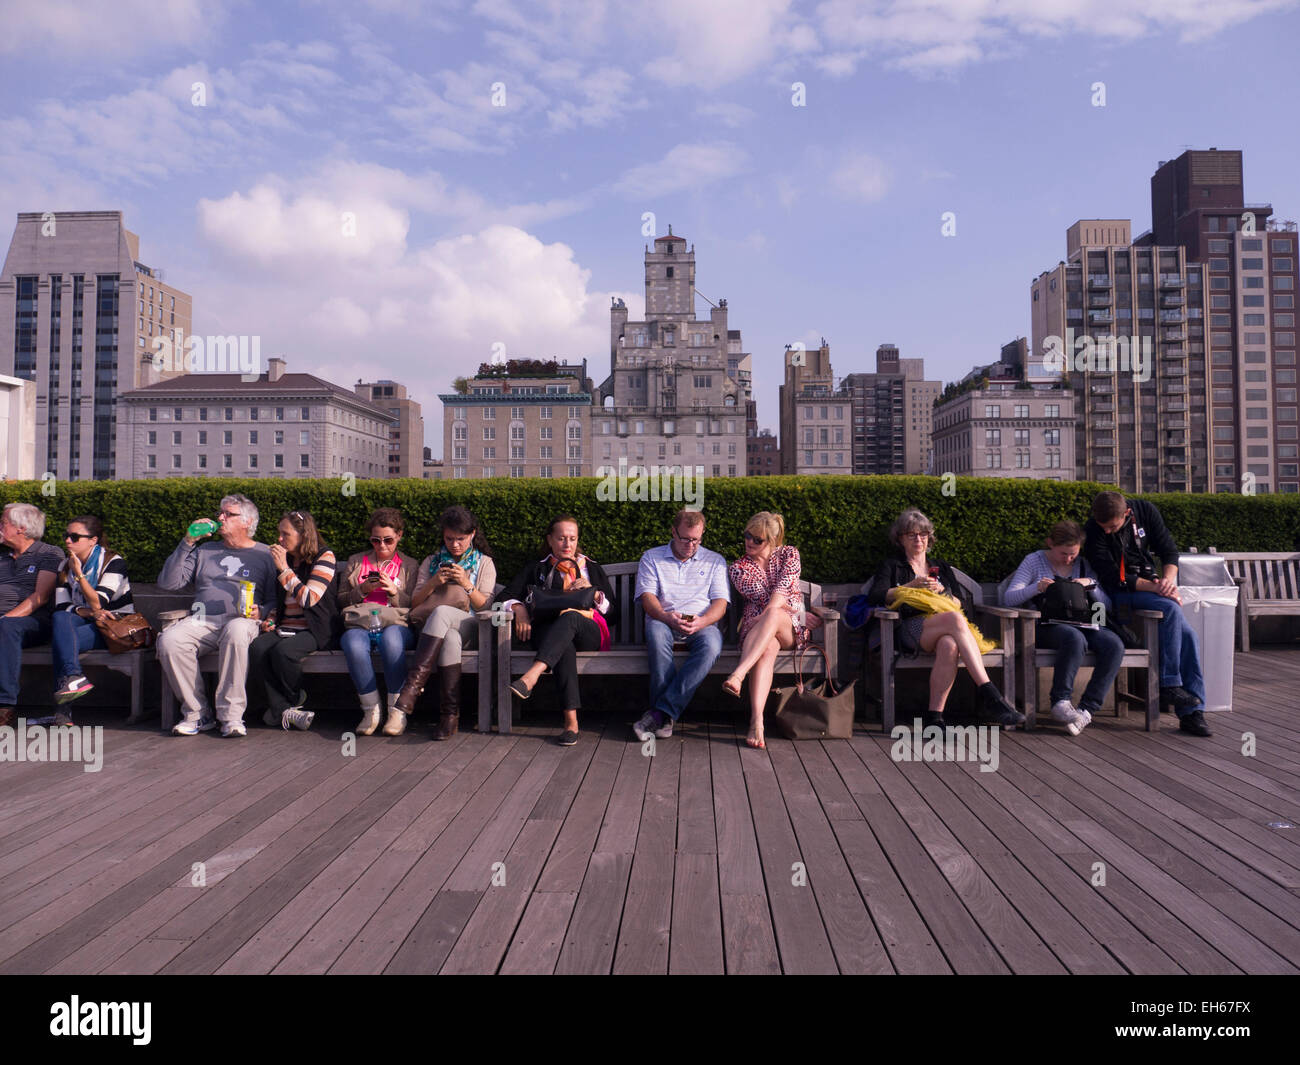 Good Roof Garden Metropolitan Museum Of Art Part - 10: ... Roof Garden Café And Martini Bar, The Metropolitan Museum Of Art, New  York -